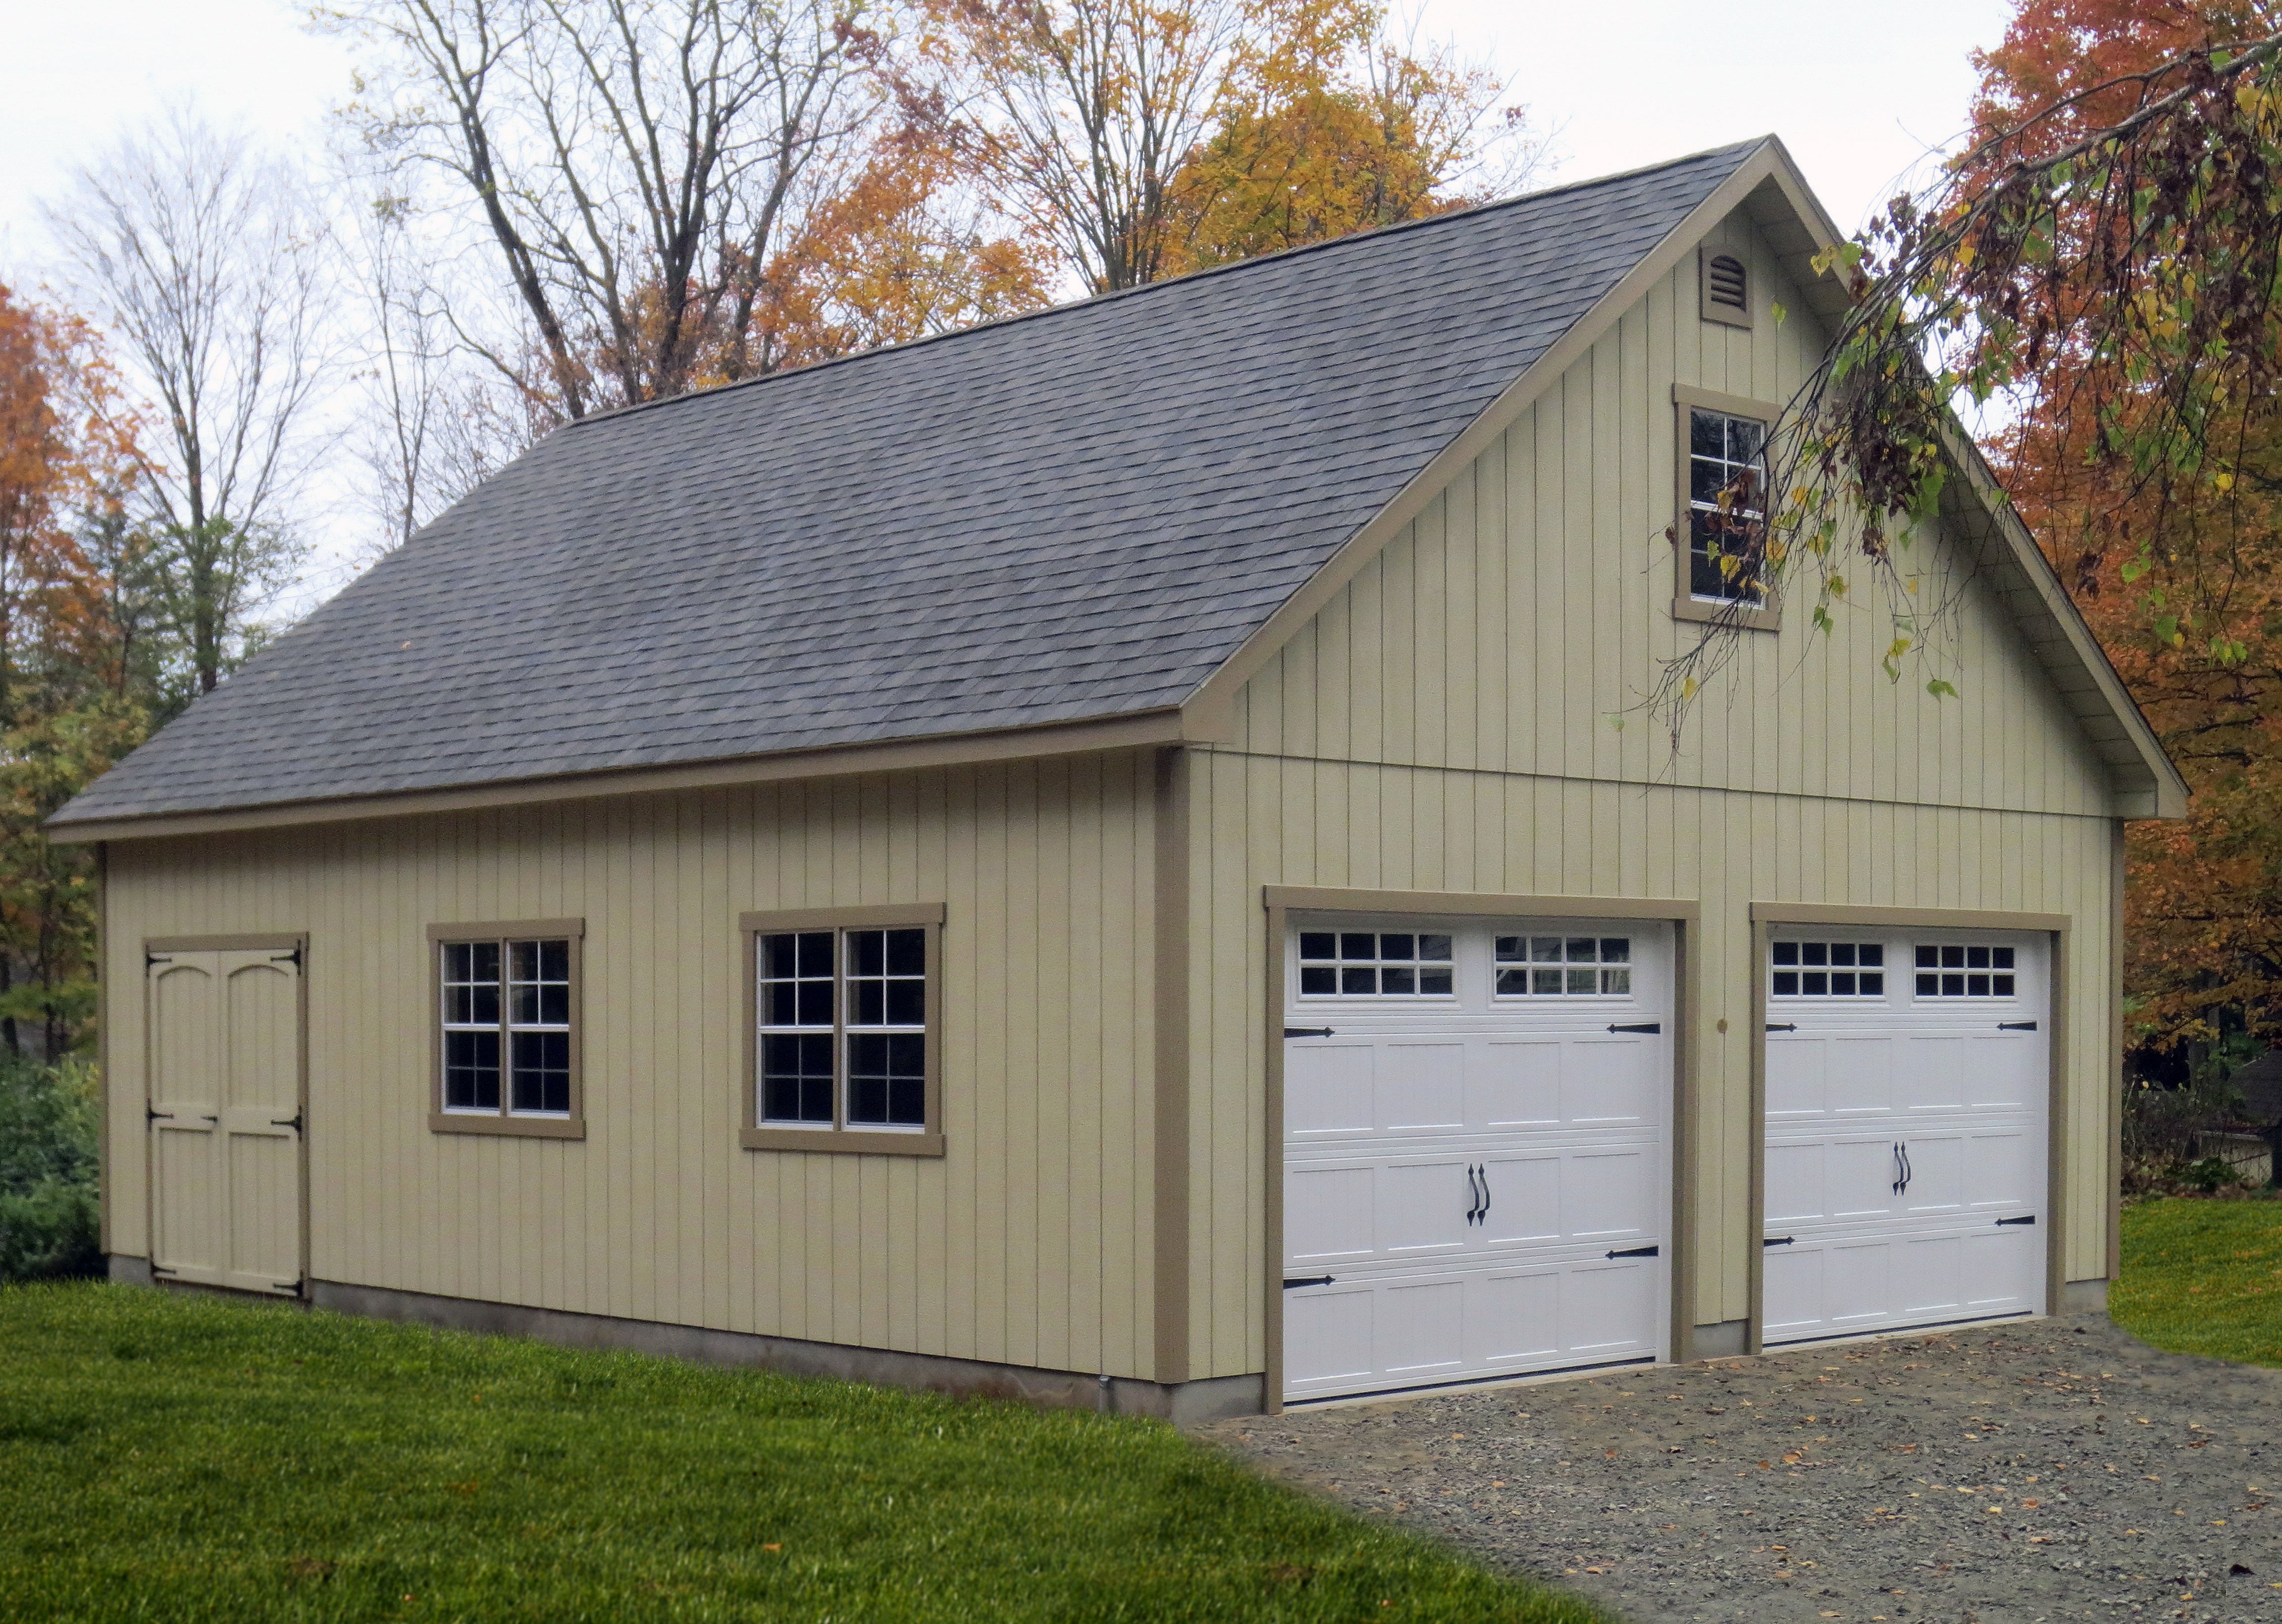 Garage Designs & Prices - 1 Car, 2 Car and 3+ Car Garages ...